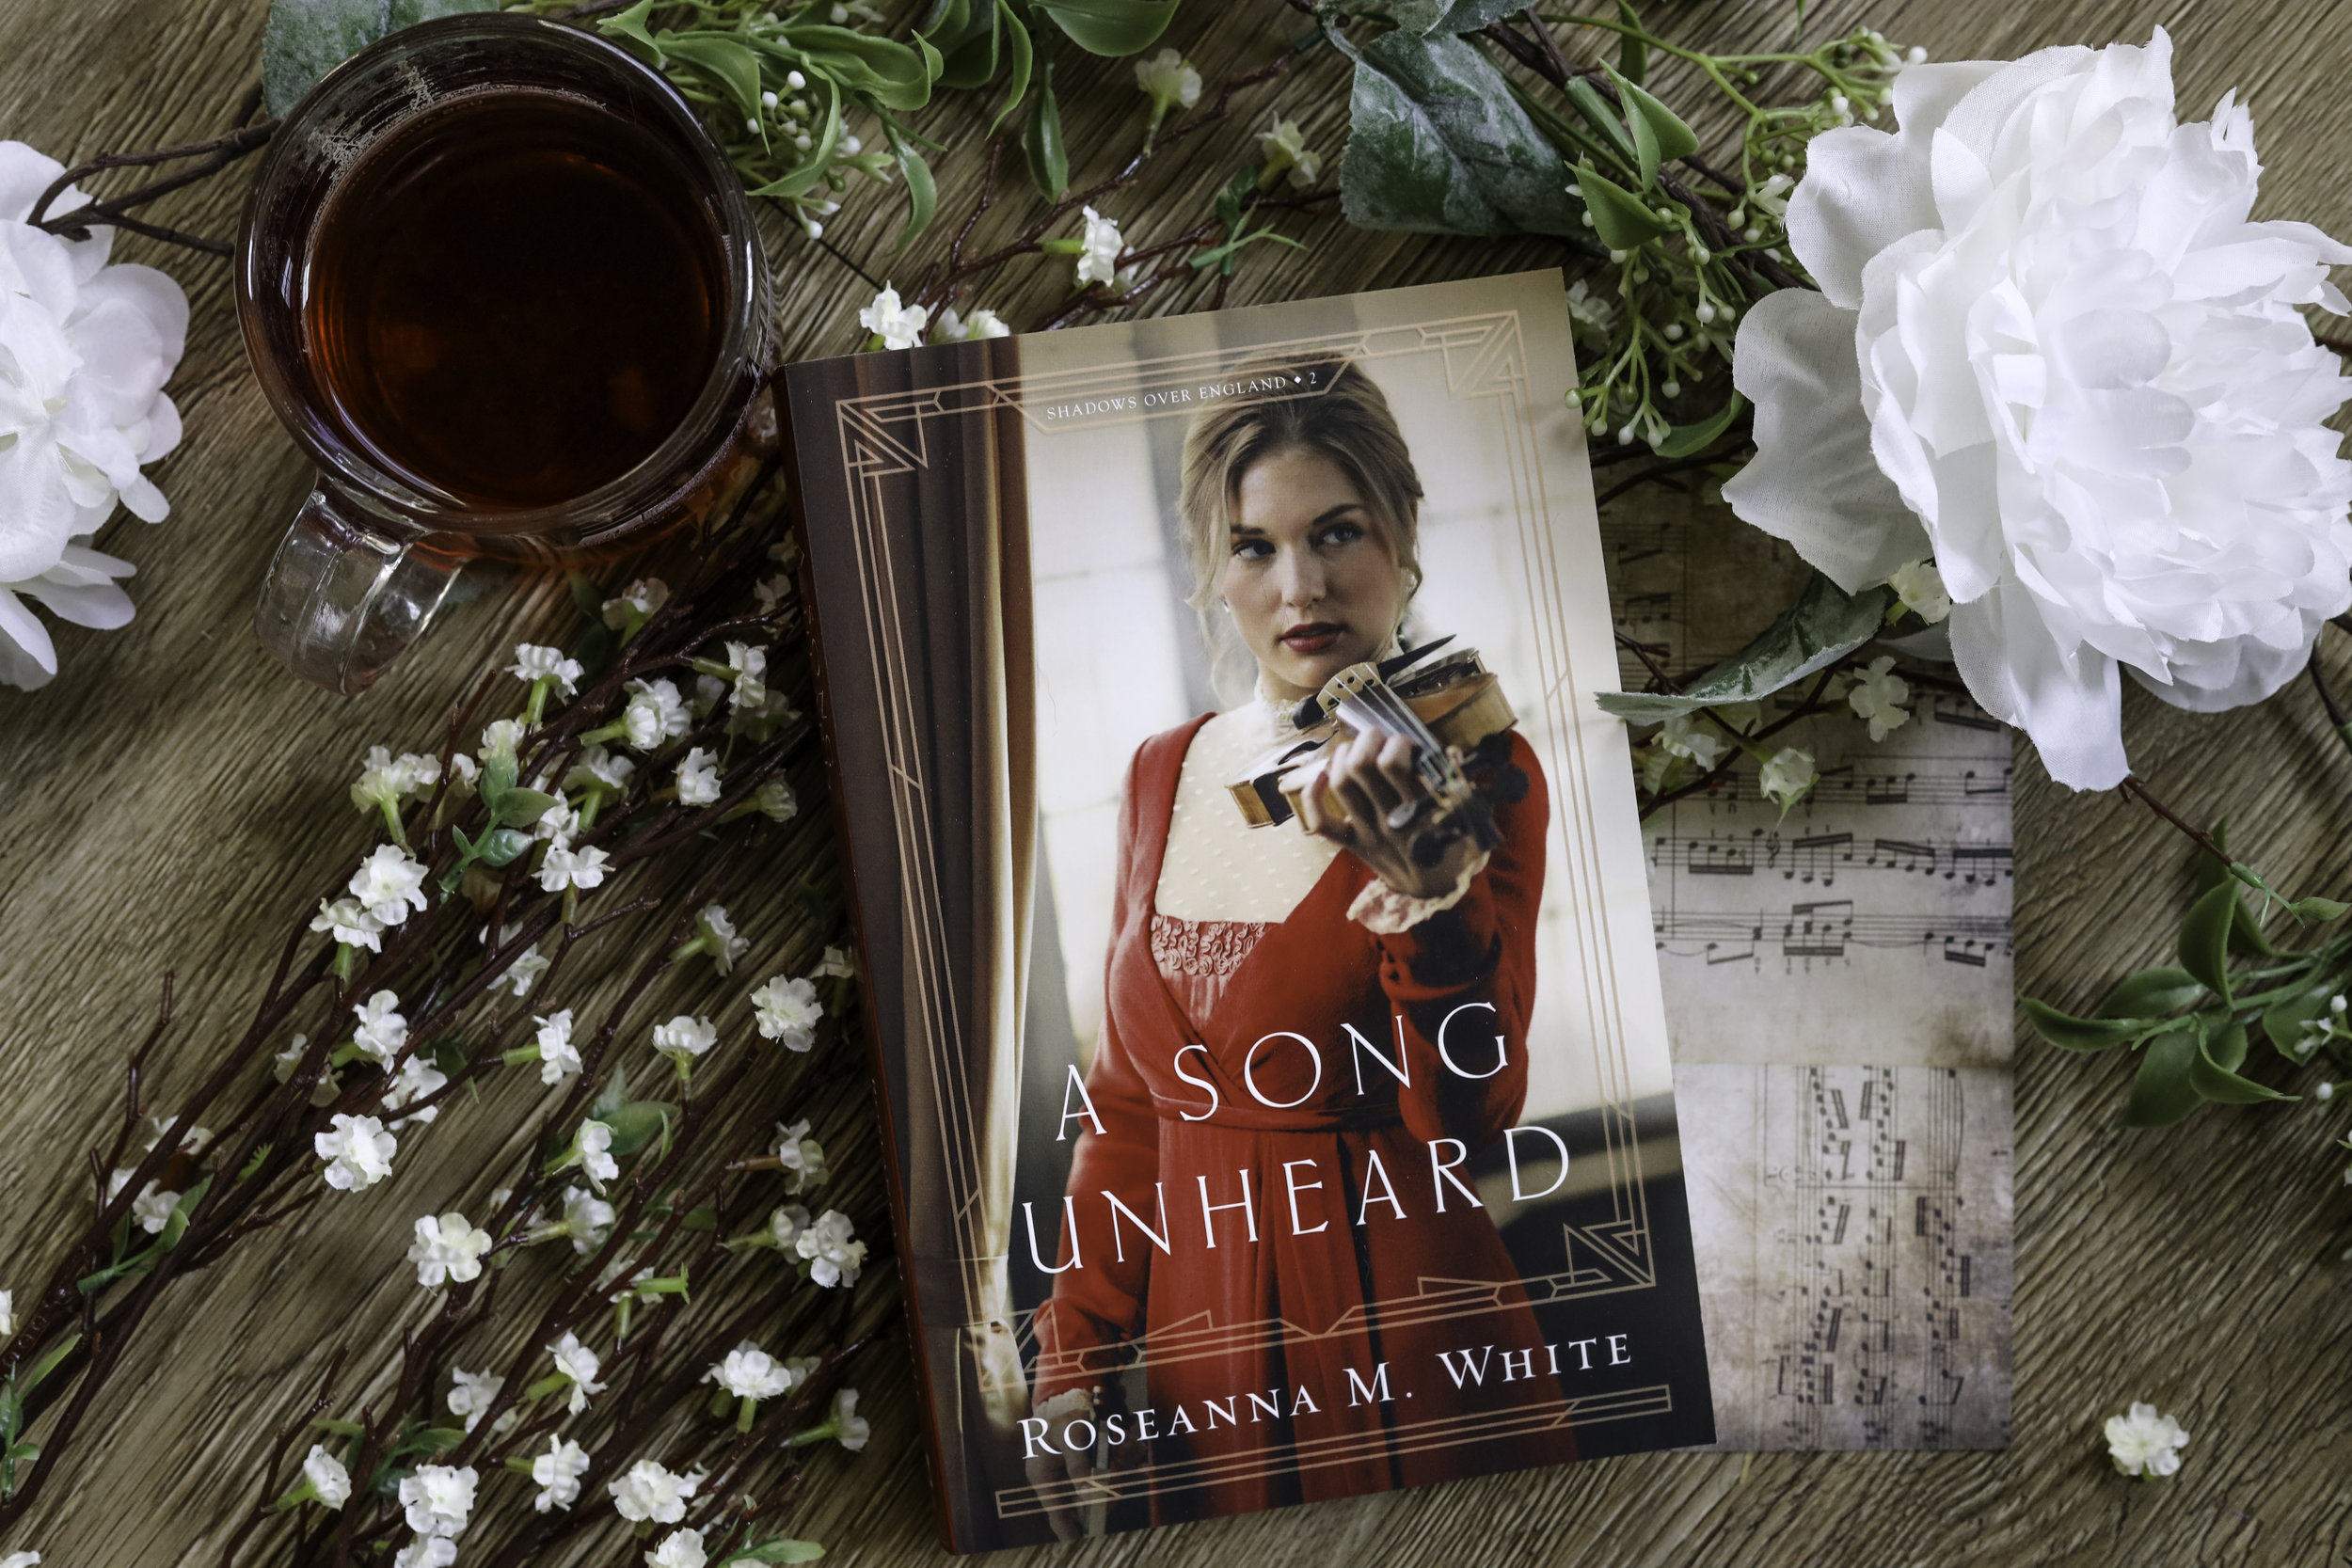 a song unheard roseanna m white